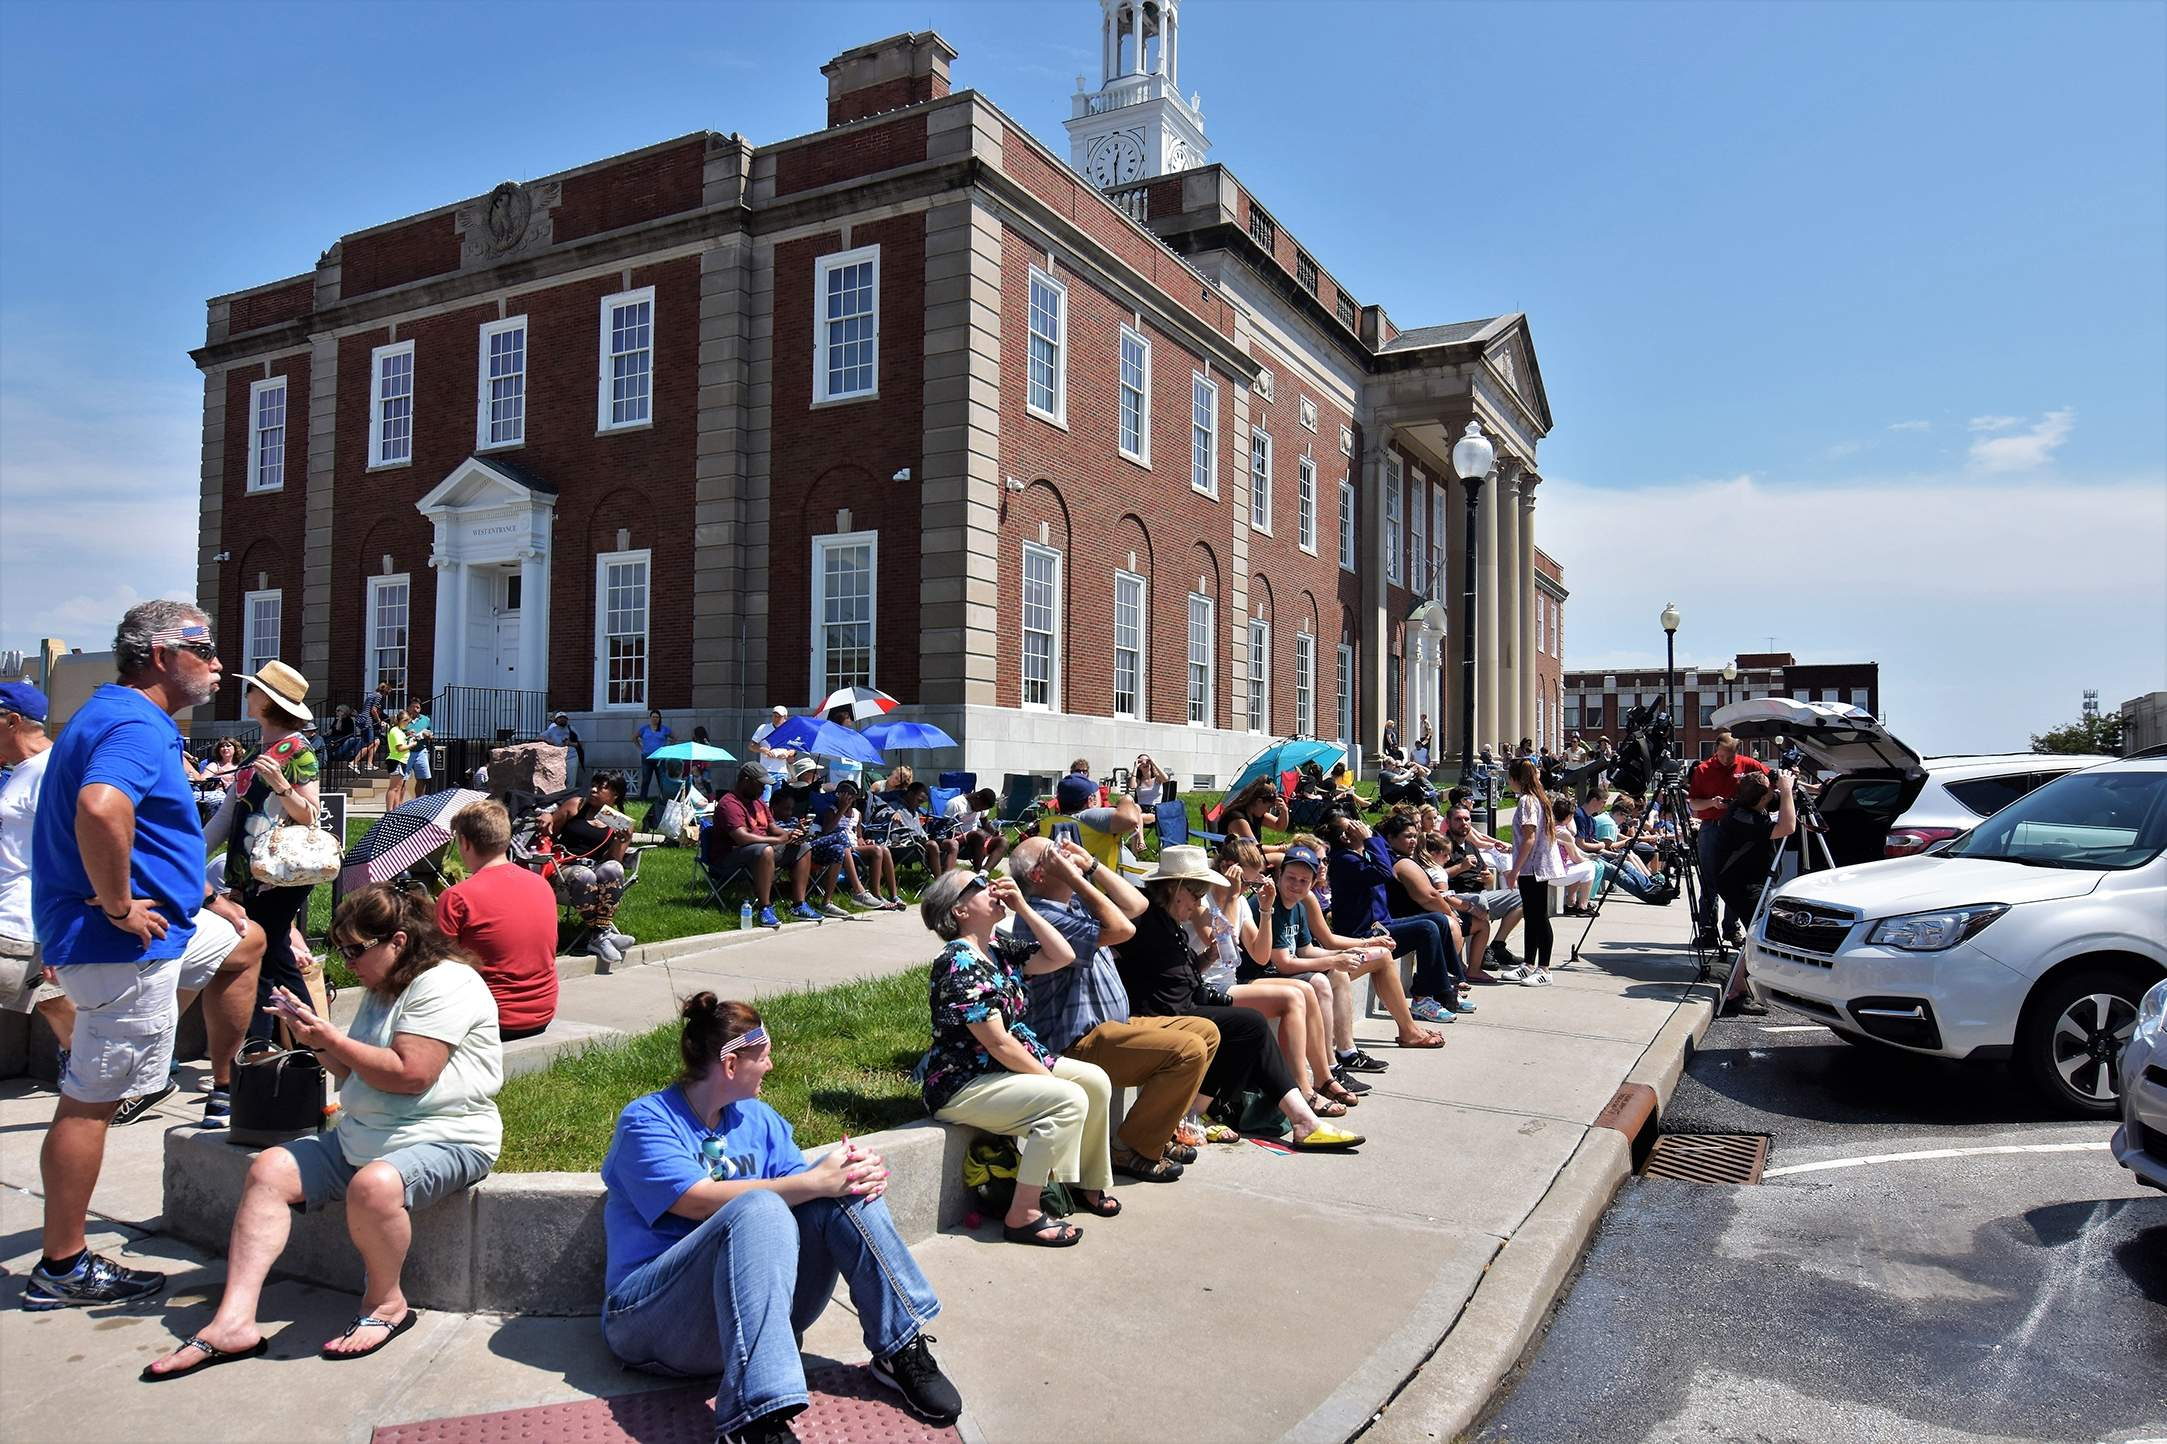 Anticipation builds as spectators at the Independence Square view the start of the partial eclipse. [David M. Rainey/Special to The Examiner]